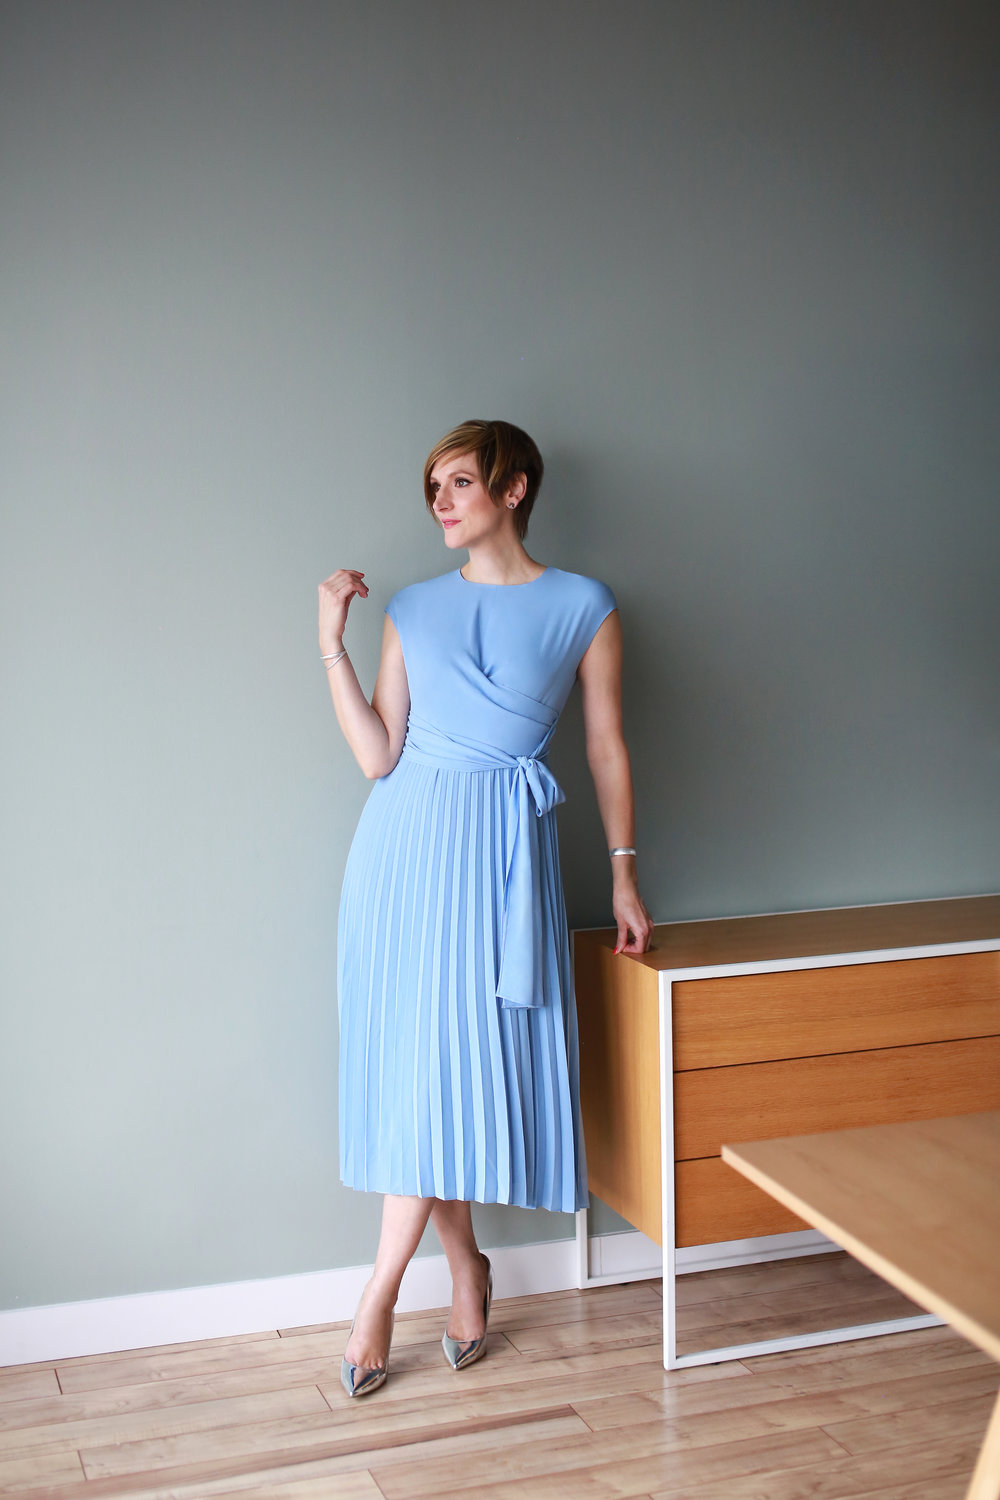 2. The Betty Dress in Sky Blue - + Also comes in navy+ Available in petite and curve sizes